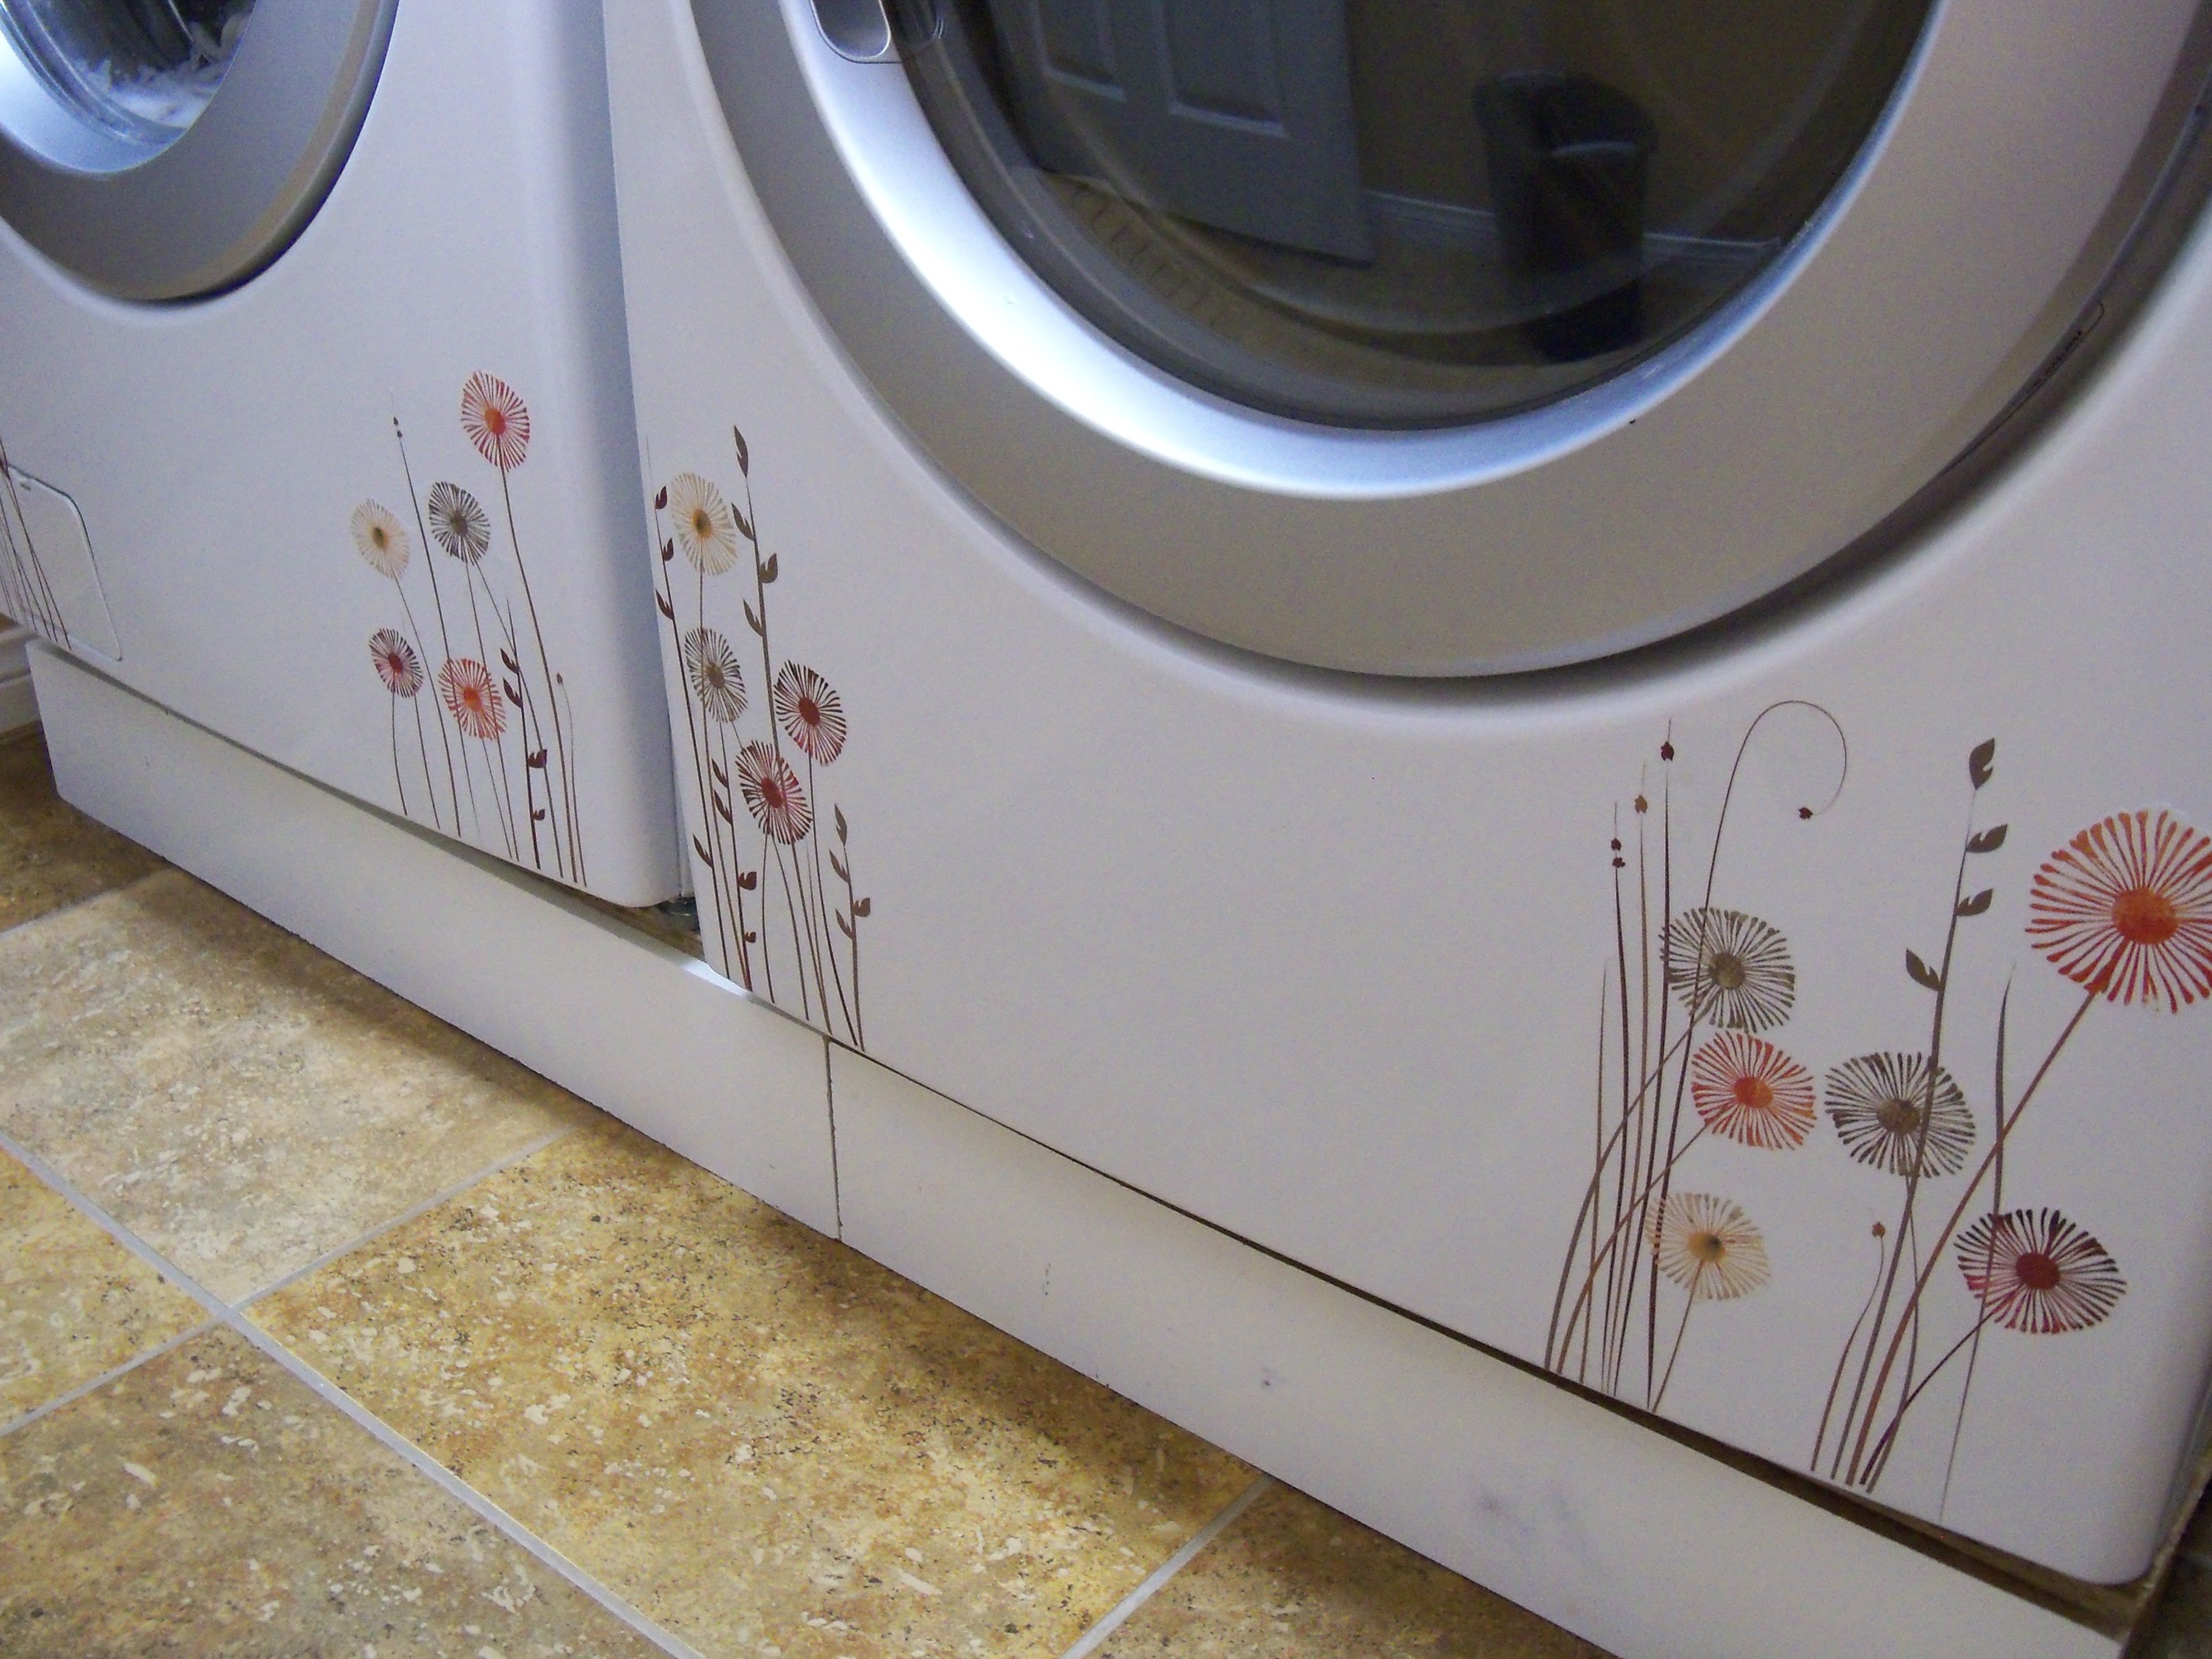 Decorating the washer/dryer  Rub on transfers from Michaels